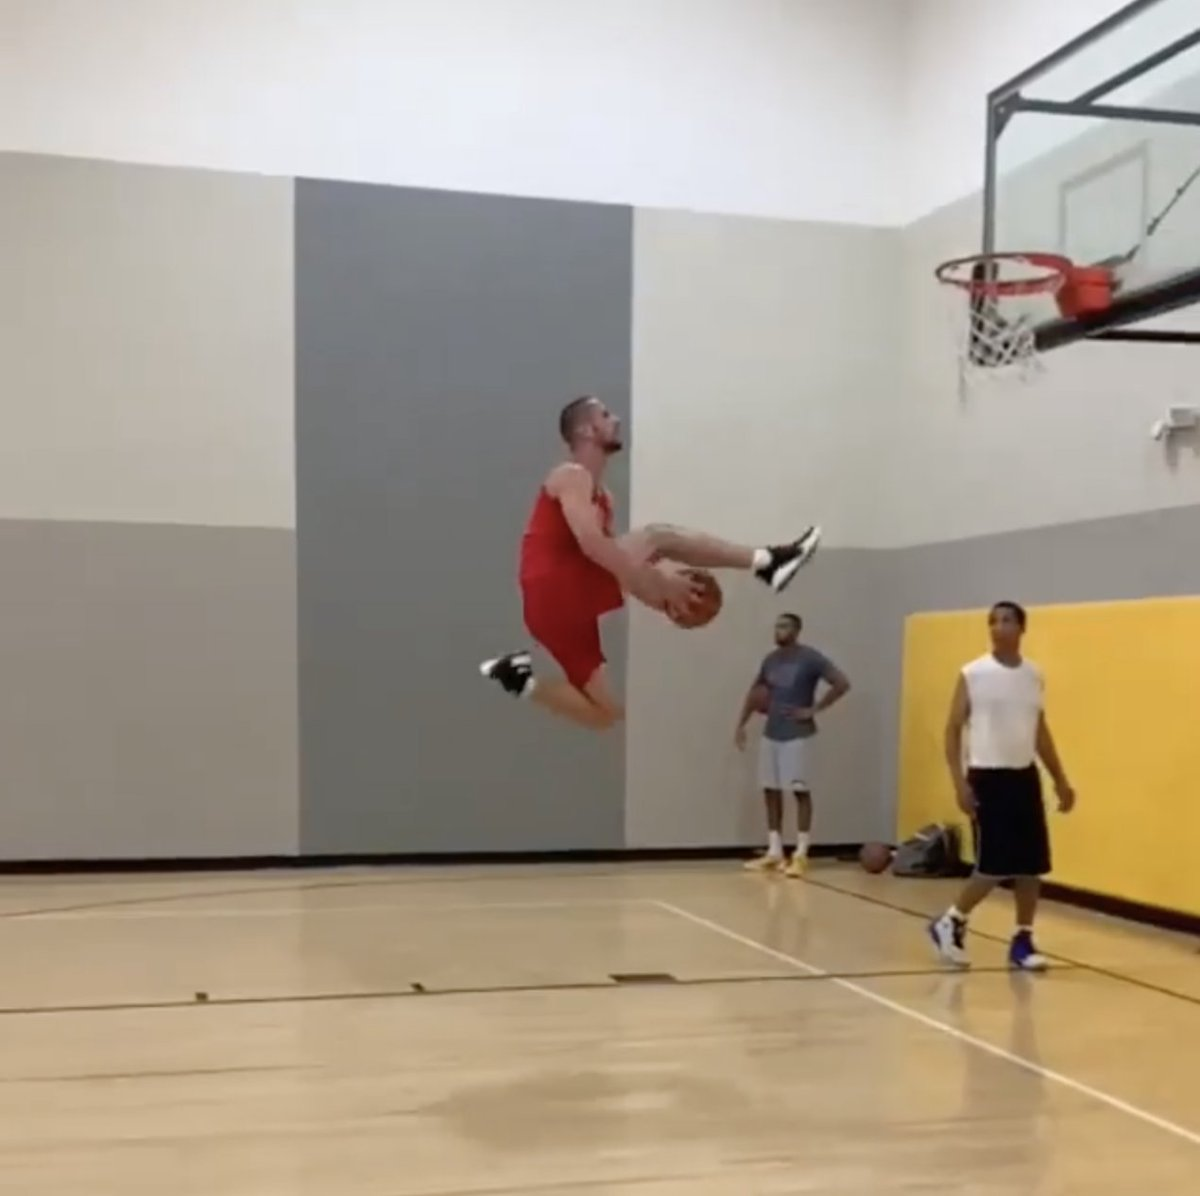 RT @BleacherReport: A look back at a dunker who might have as much bounce as Zach LaVine 😳  (via _nickbriz/IG) https://t.co/XE15TfMvNt